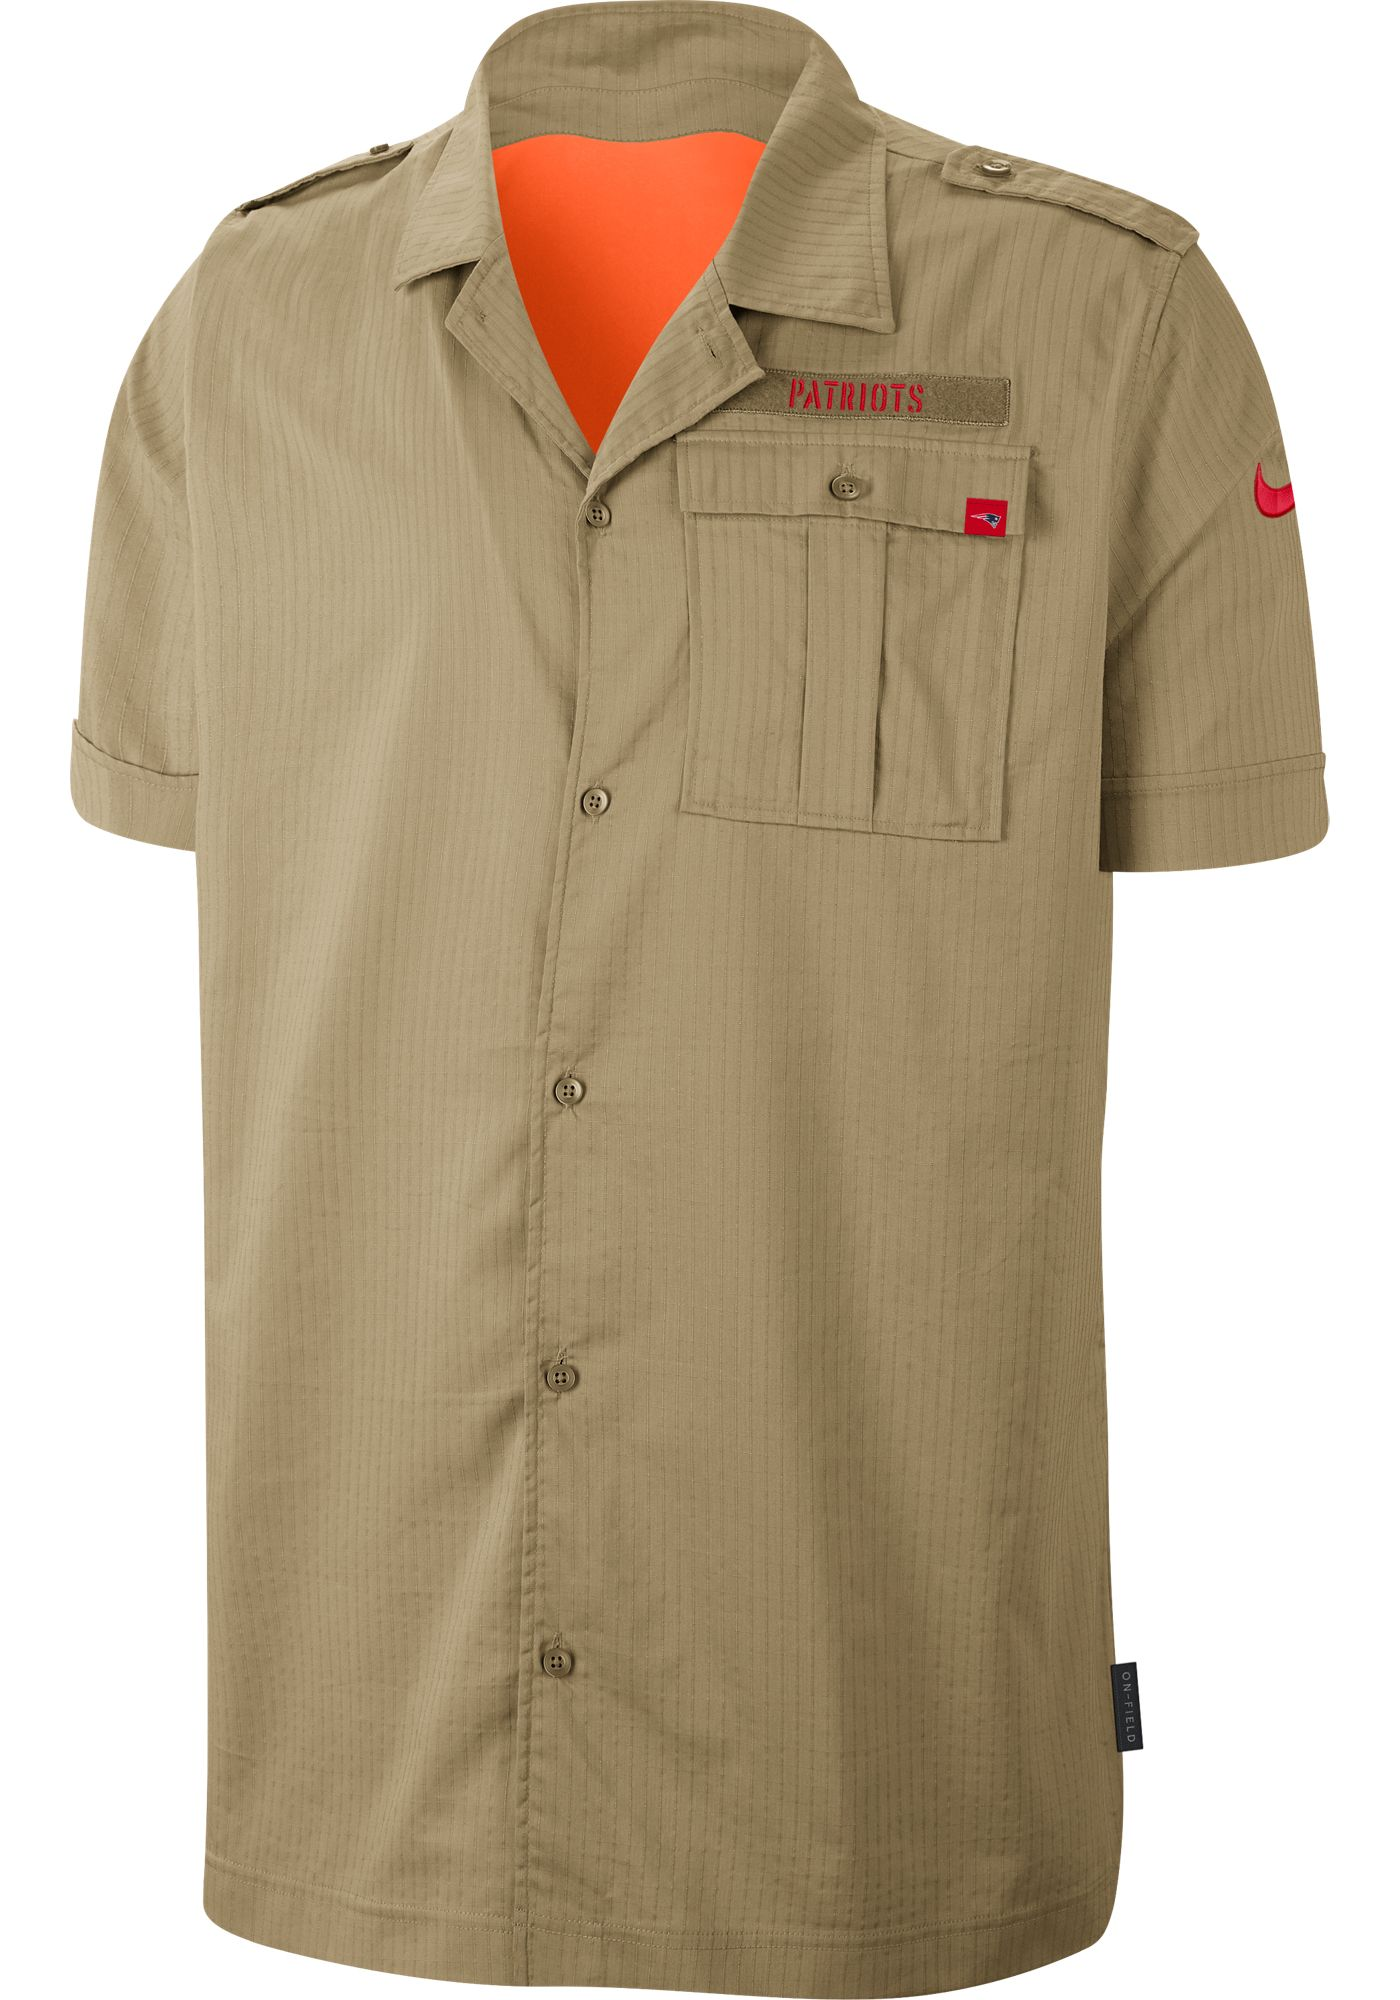 Nike Men's Salute to Service New England Patriots Beige Button Down Shirt